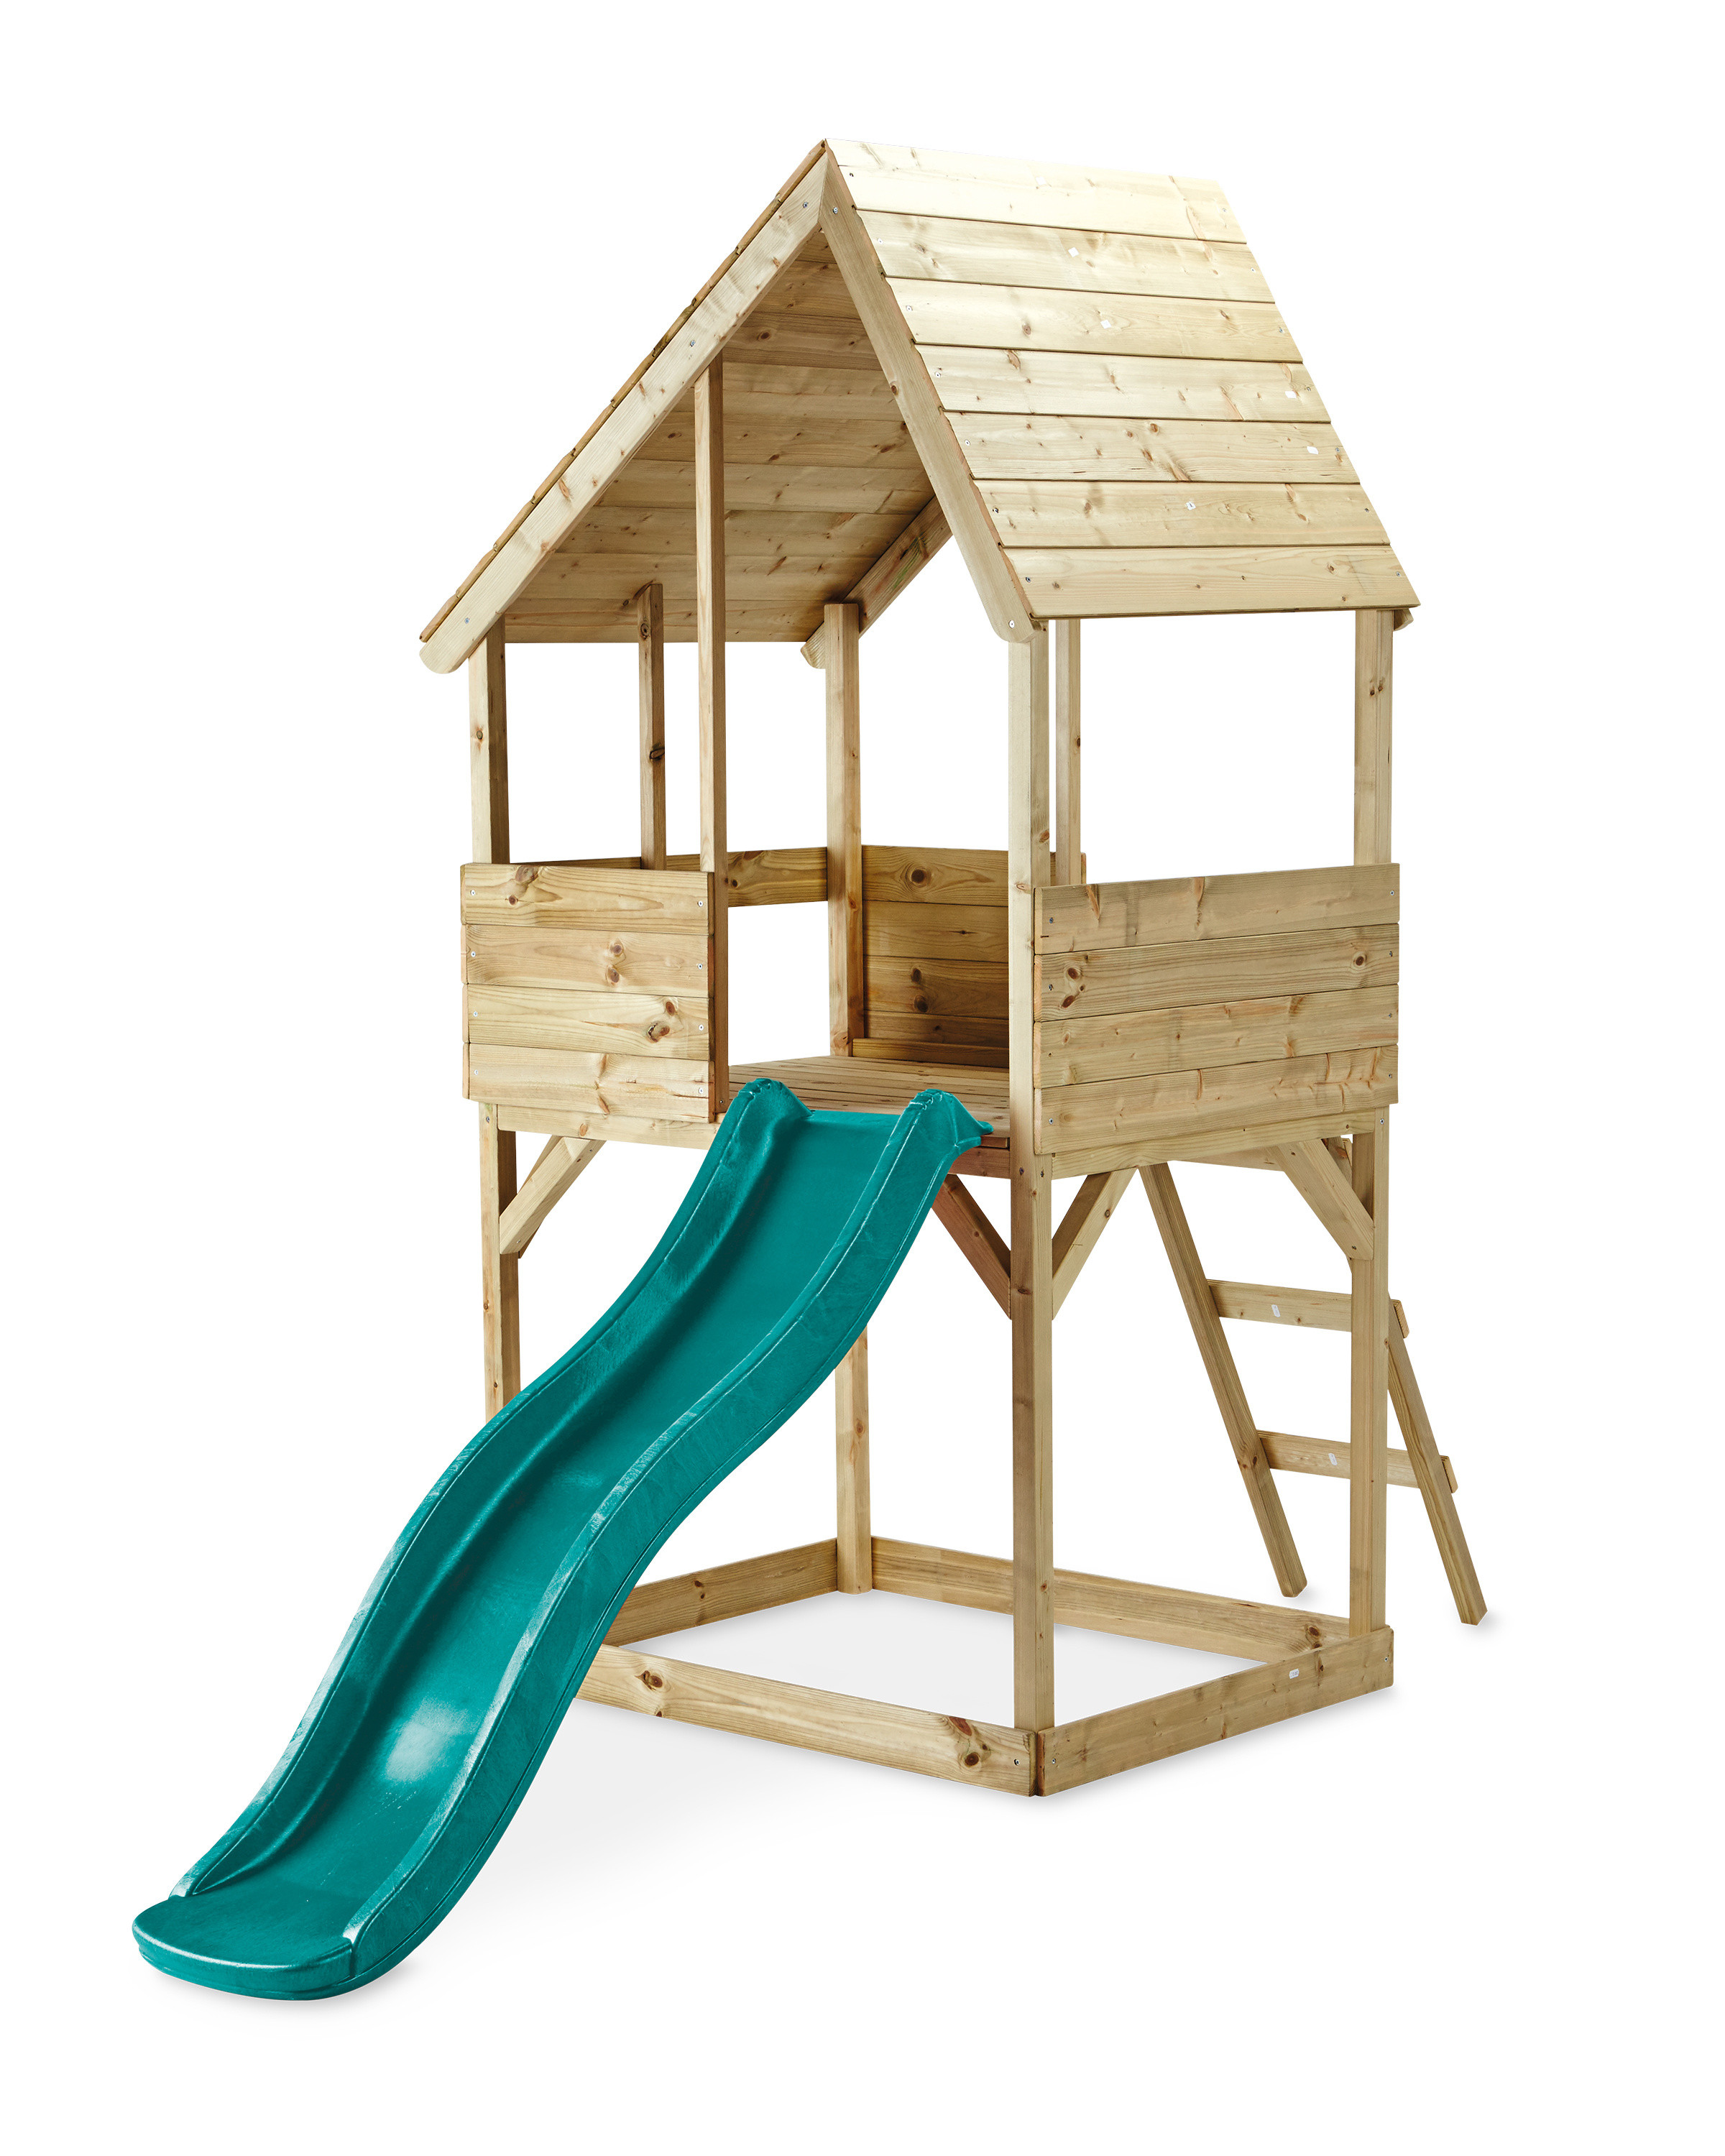 Childrens Wooden Playhouse Aldi Uk